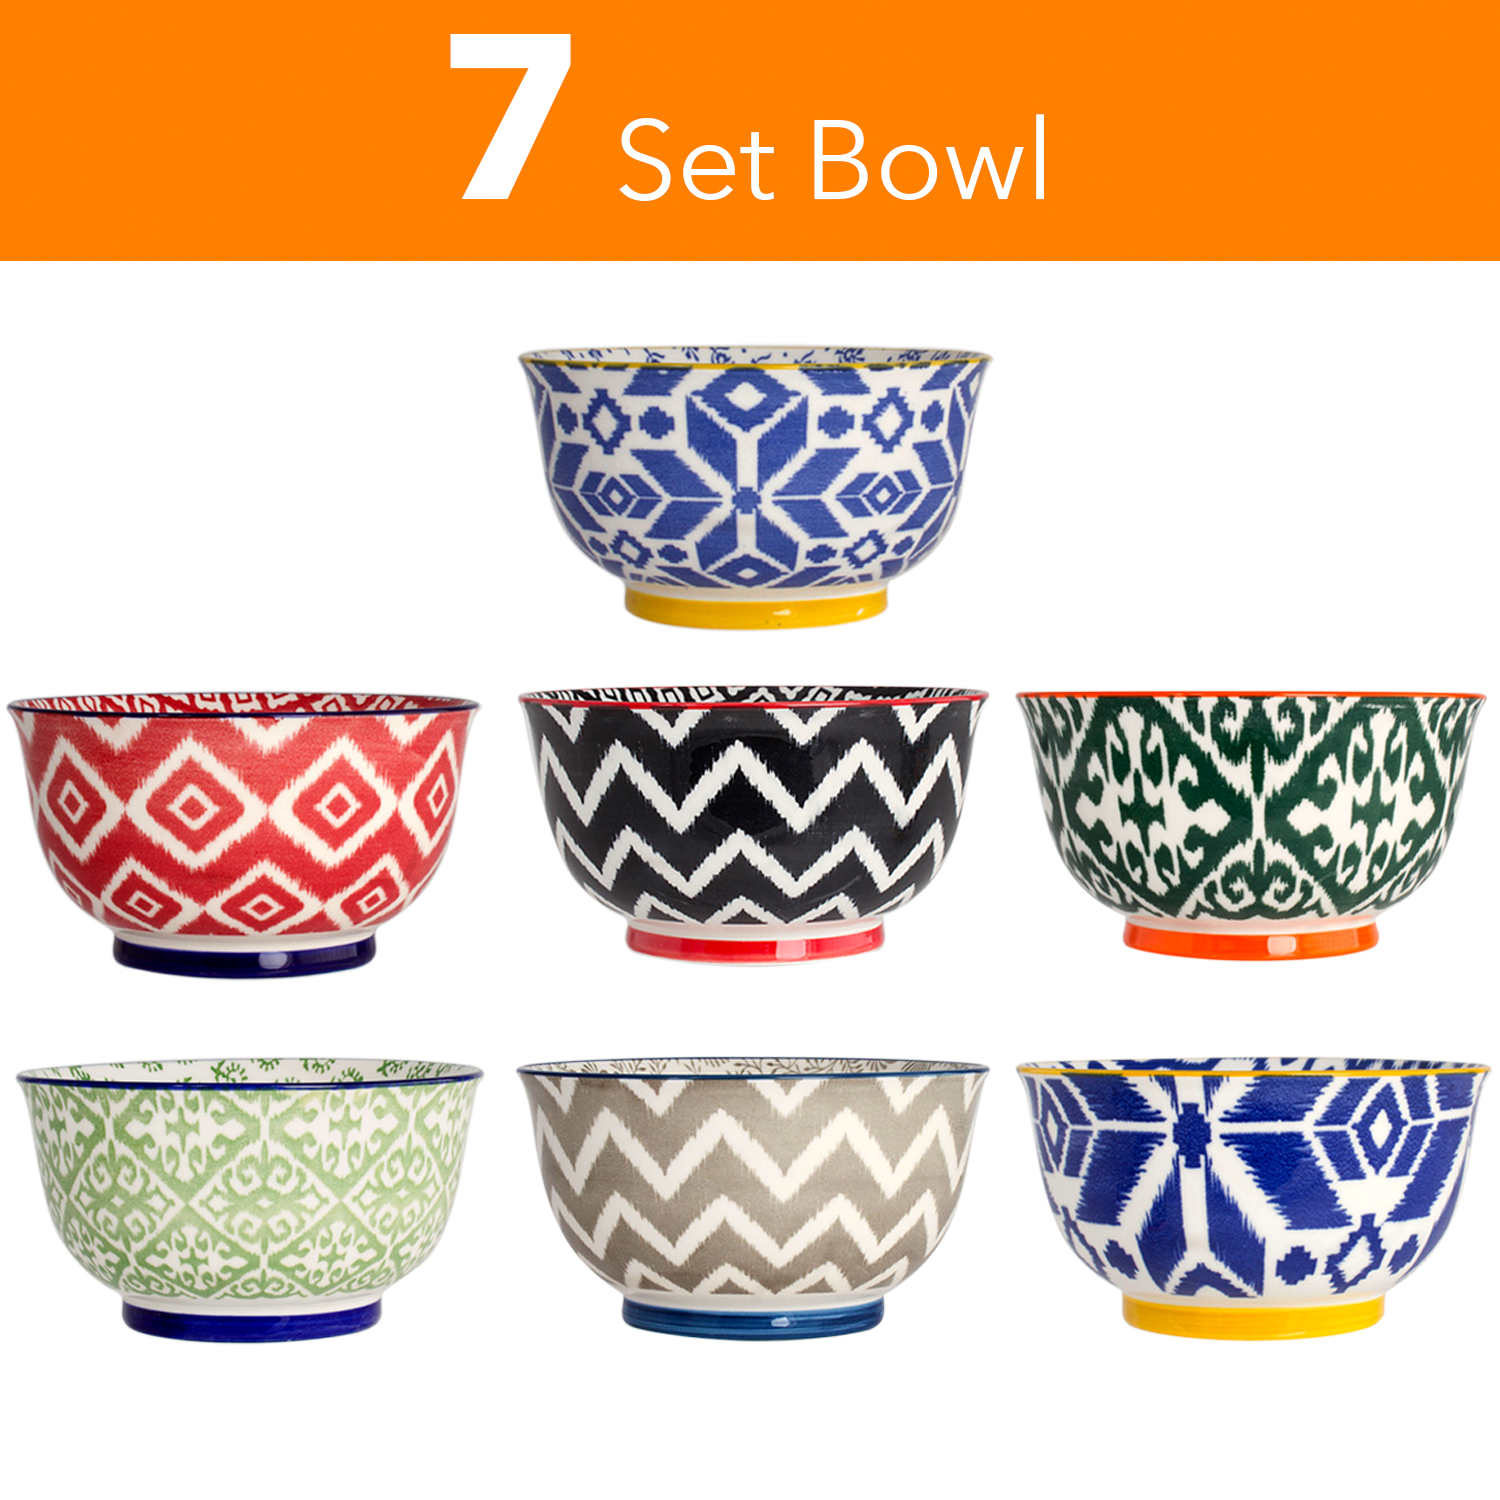 High Quality Large 6 Inch Ceramic Cereal Soup Pasta Bowl Set 7 Pcs. Ceramic Bowls by